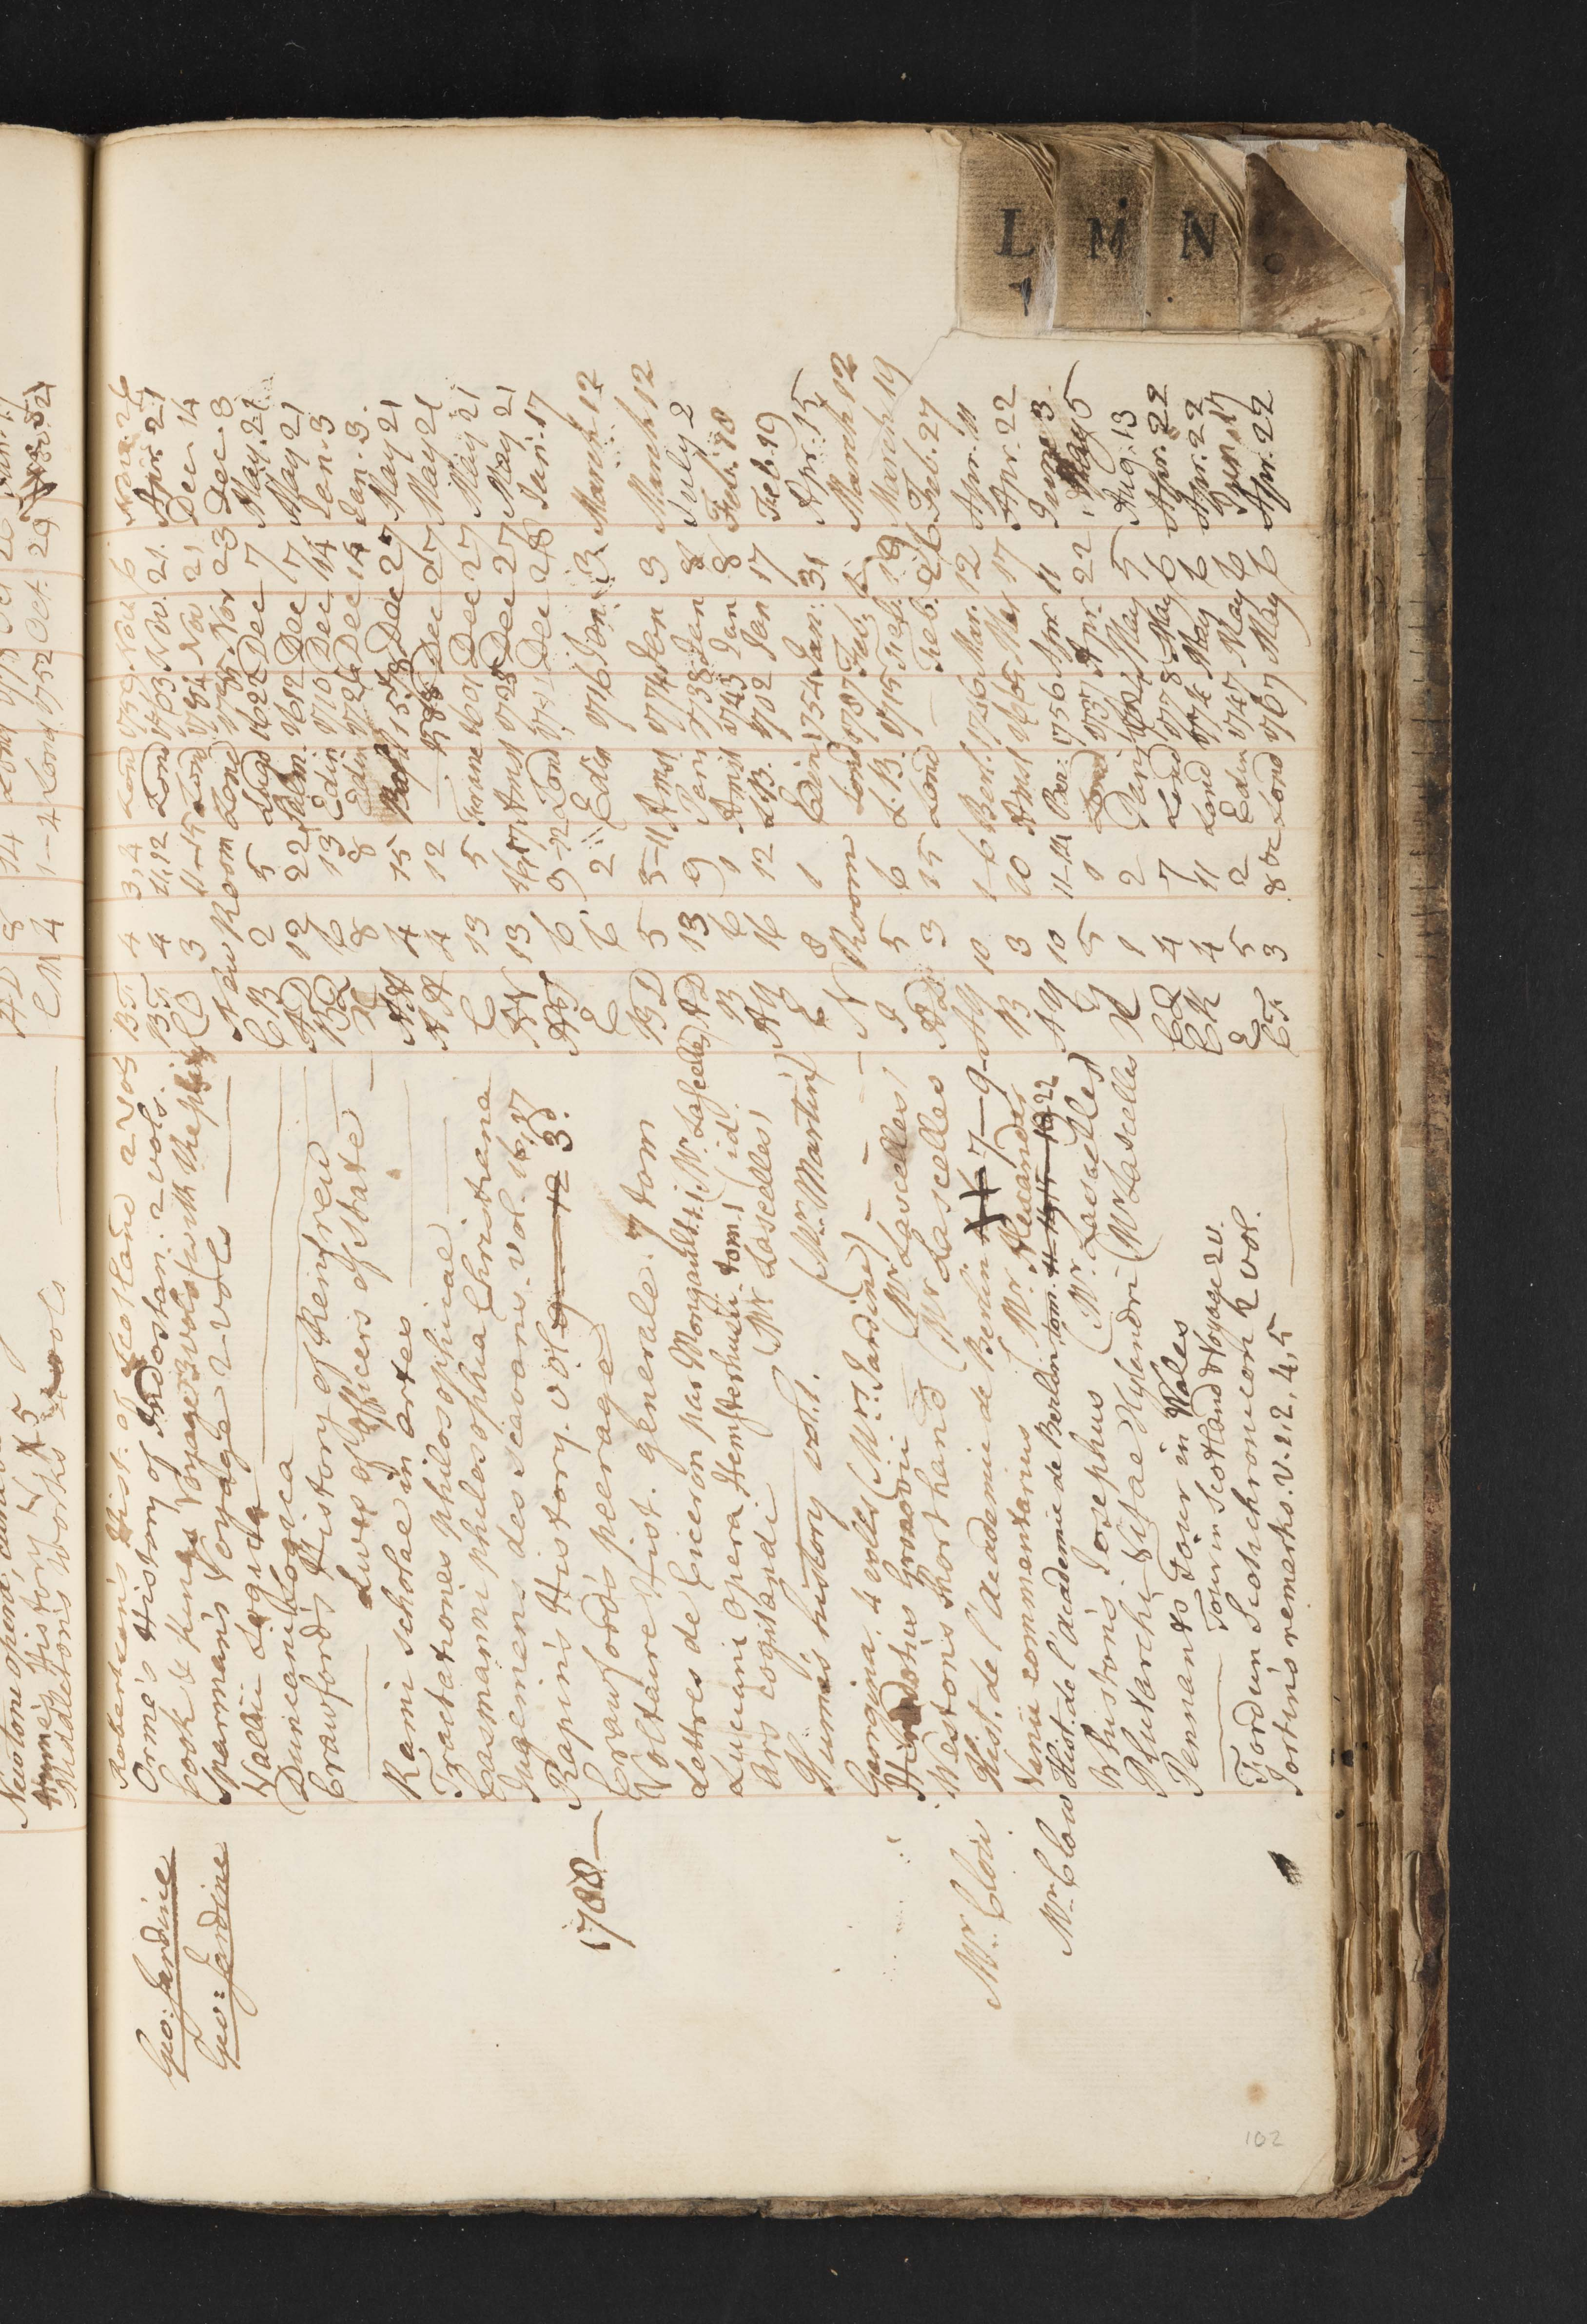 Glasgow University Borrower's Register, MS 5, f. 82r: Mrs Jardine's borrowing